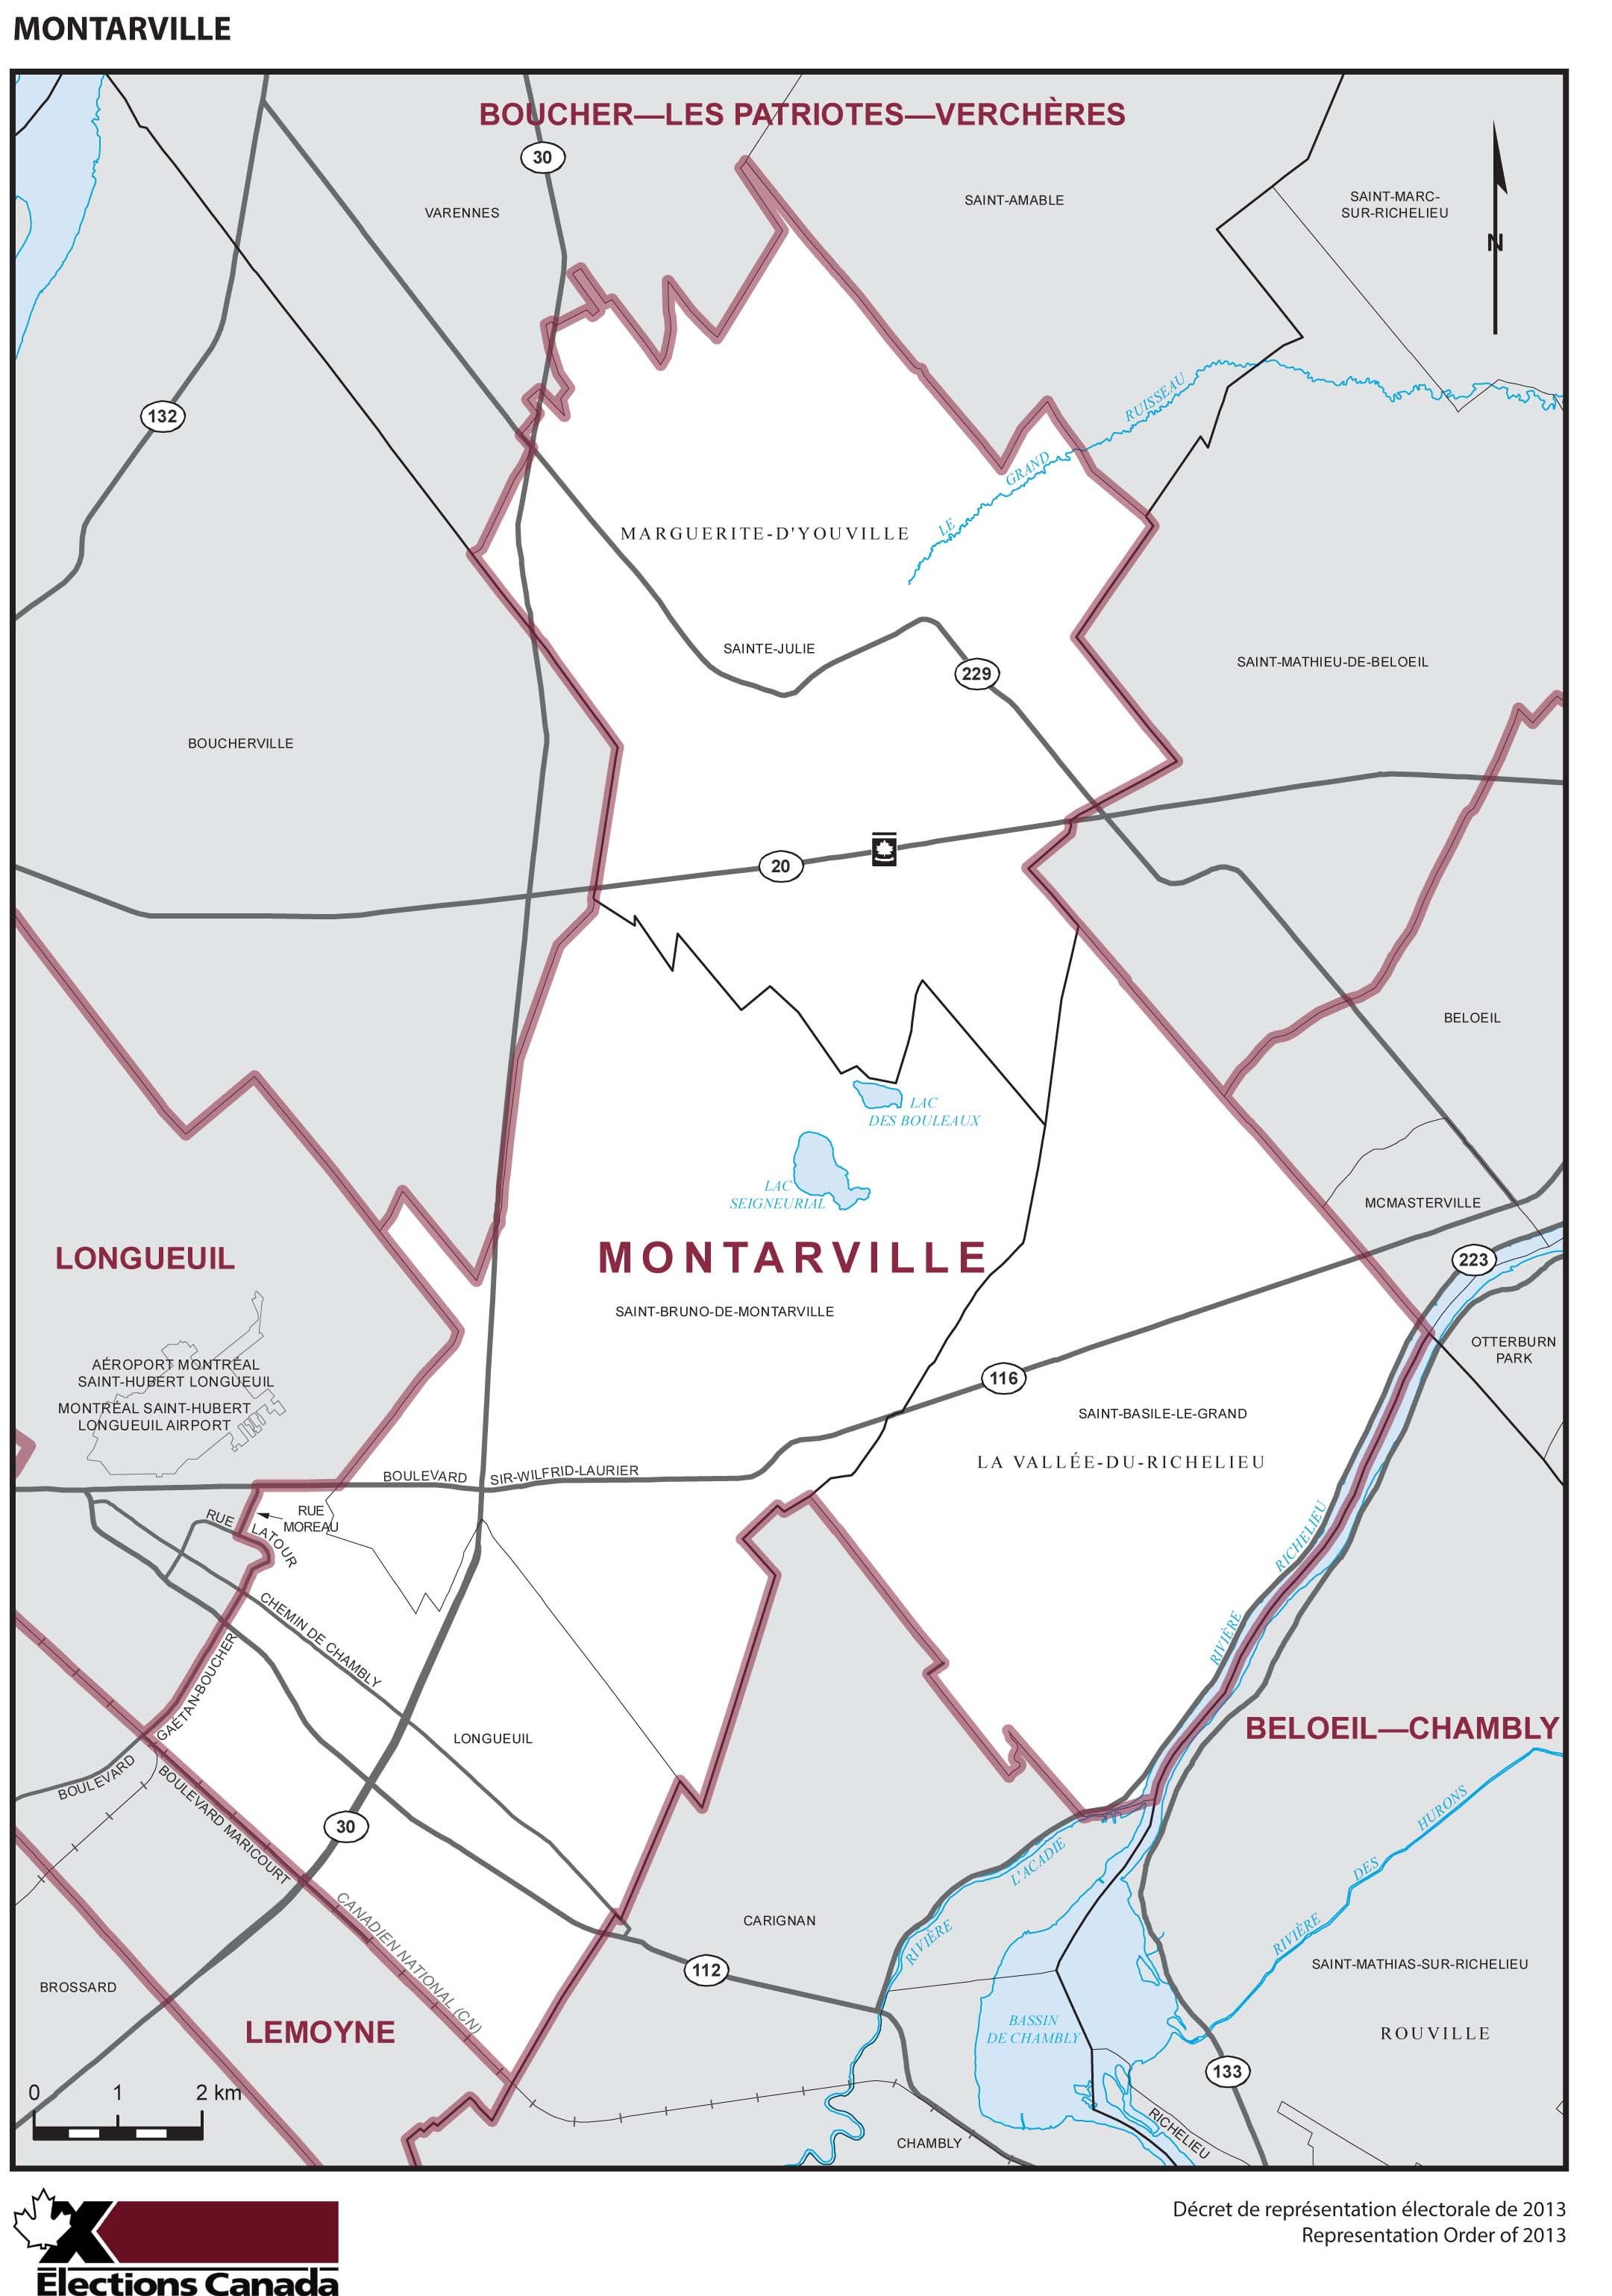 Map: Montarville, Federal electoral district, 2013 Representation Order (in white), Quebec